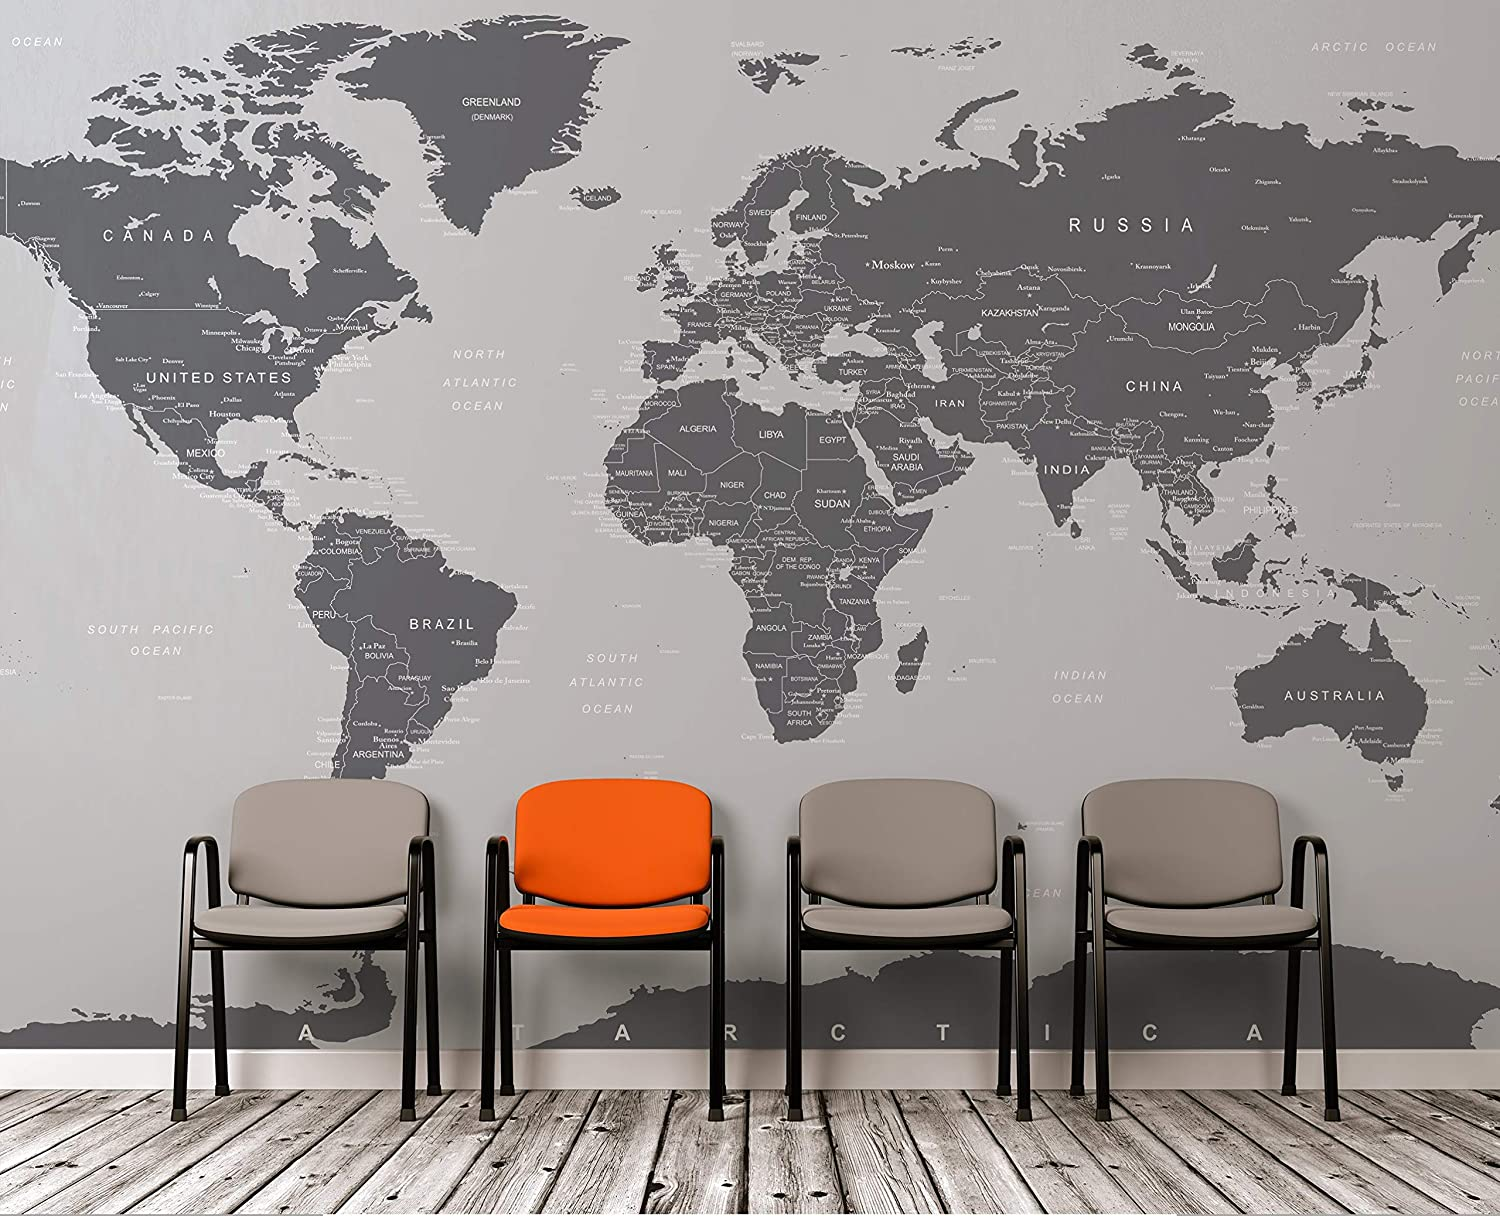 World Map Wall Mural Amazon.com: Large Grey World Map Wall Mural. Simple Peel and Stick